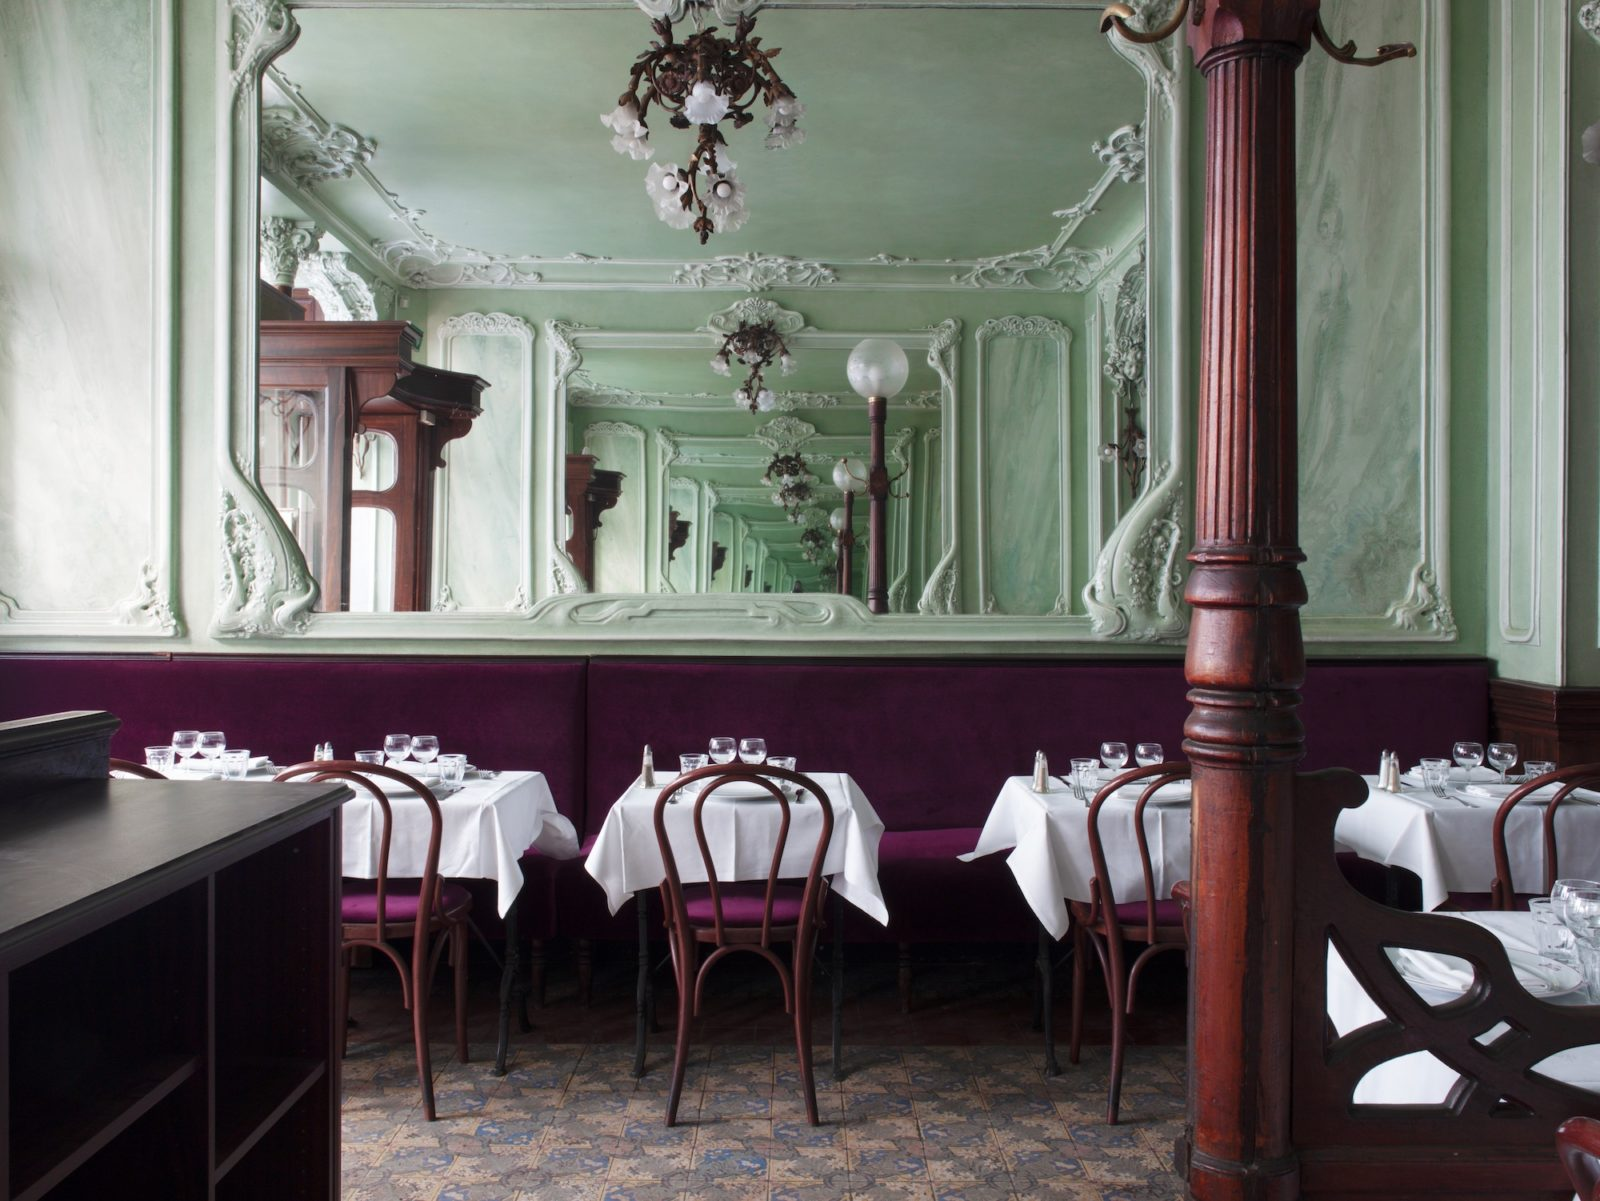 Bouillon Julien restaurant in Paris comes with spectacular Art Nouveau interiors and classic French food for travelers on a budget.